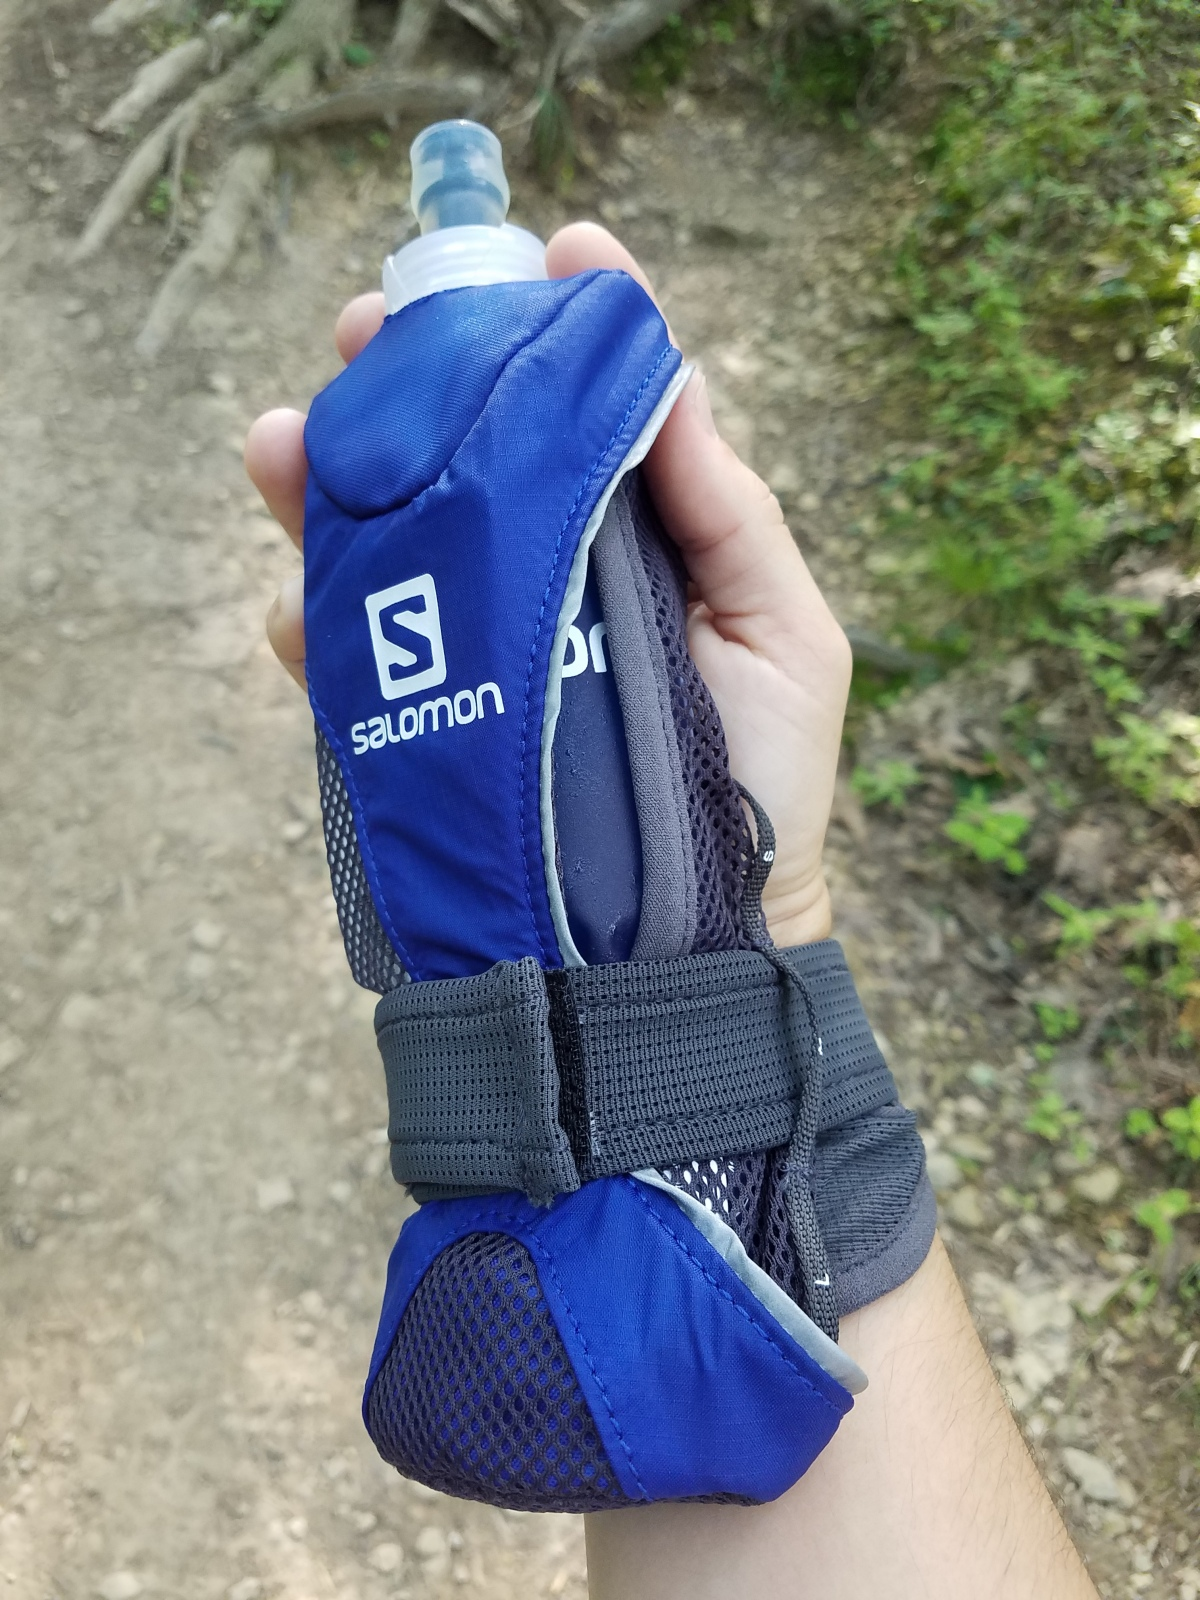 Gear Review: Salomon Hydro Handset